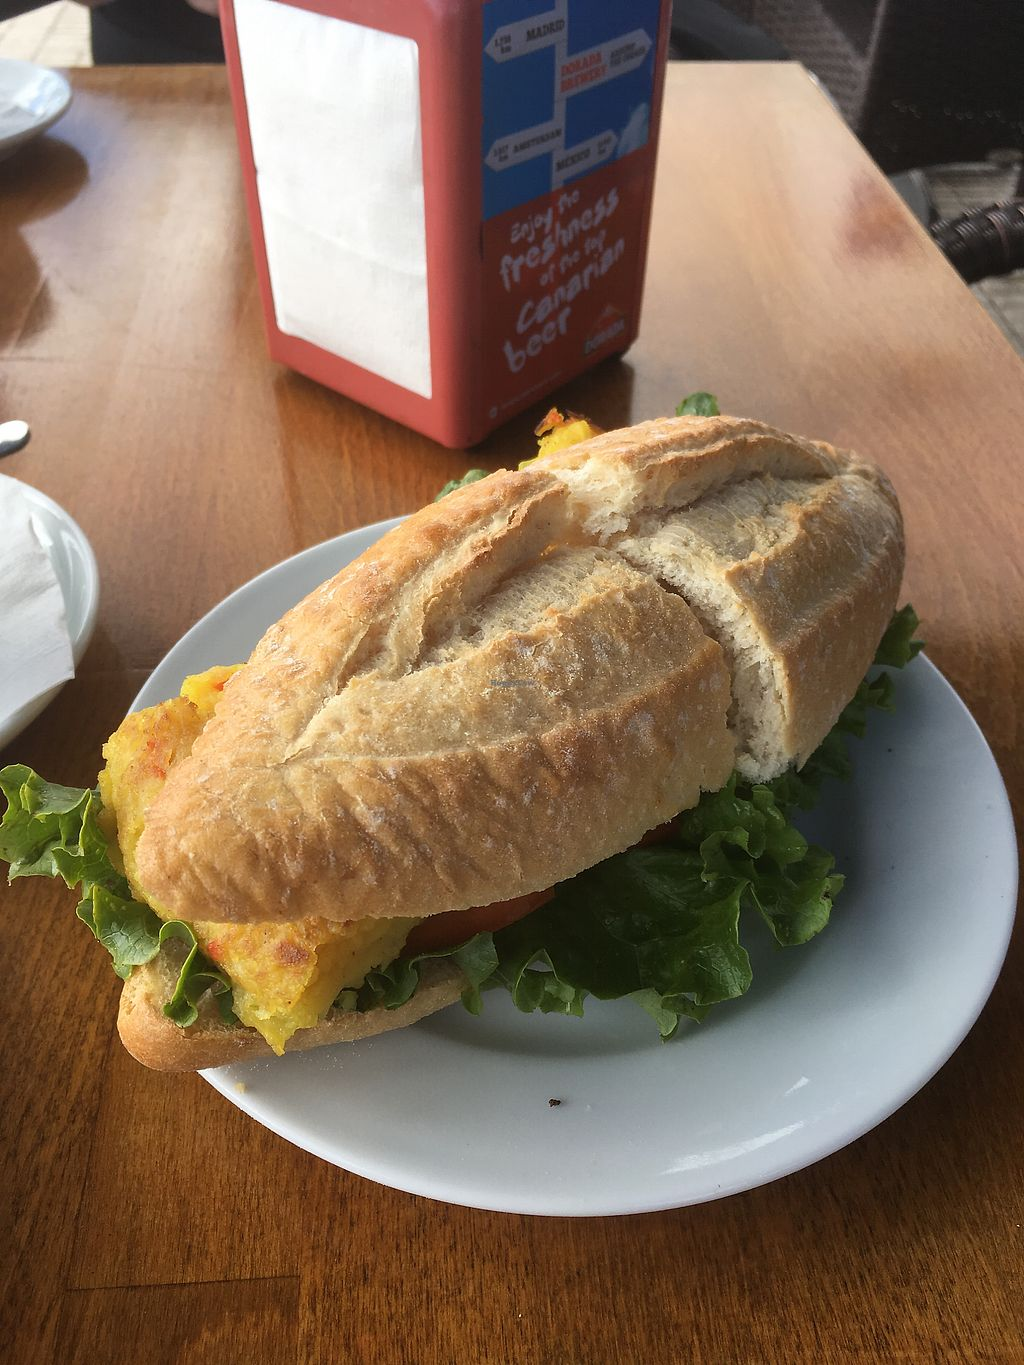 """Photo of Cafe Bonjour  by <a href=""""/members/profile/Reutmanx"""">Reutmanx</a> <br/>Tortilla baguette <br/> January 7, 2018  - <a href='/contact/abuse/image/84767/344061'>Report</a>"""